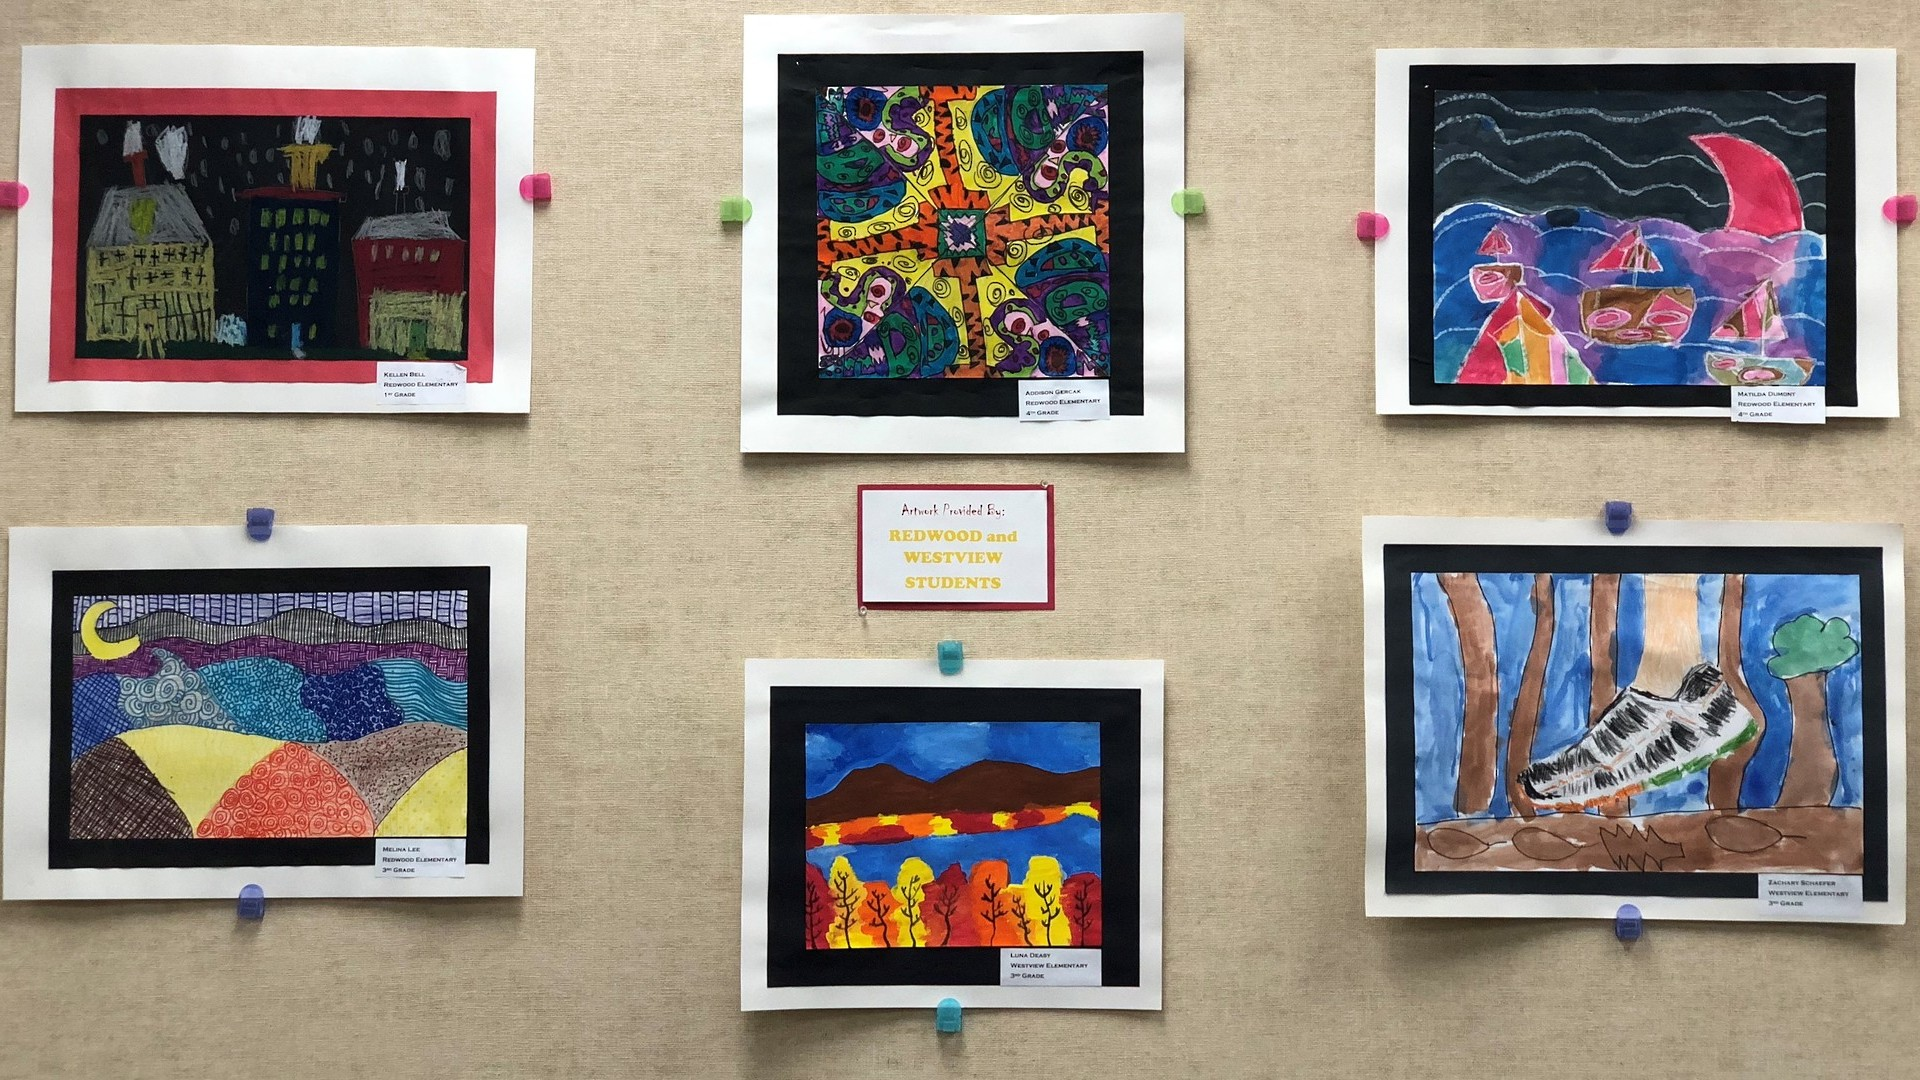 District Artwork by Redwood and Westview Elementary Students